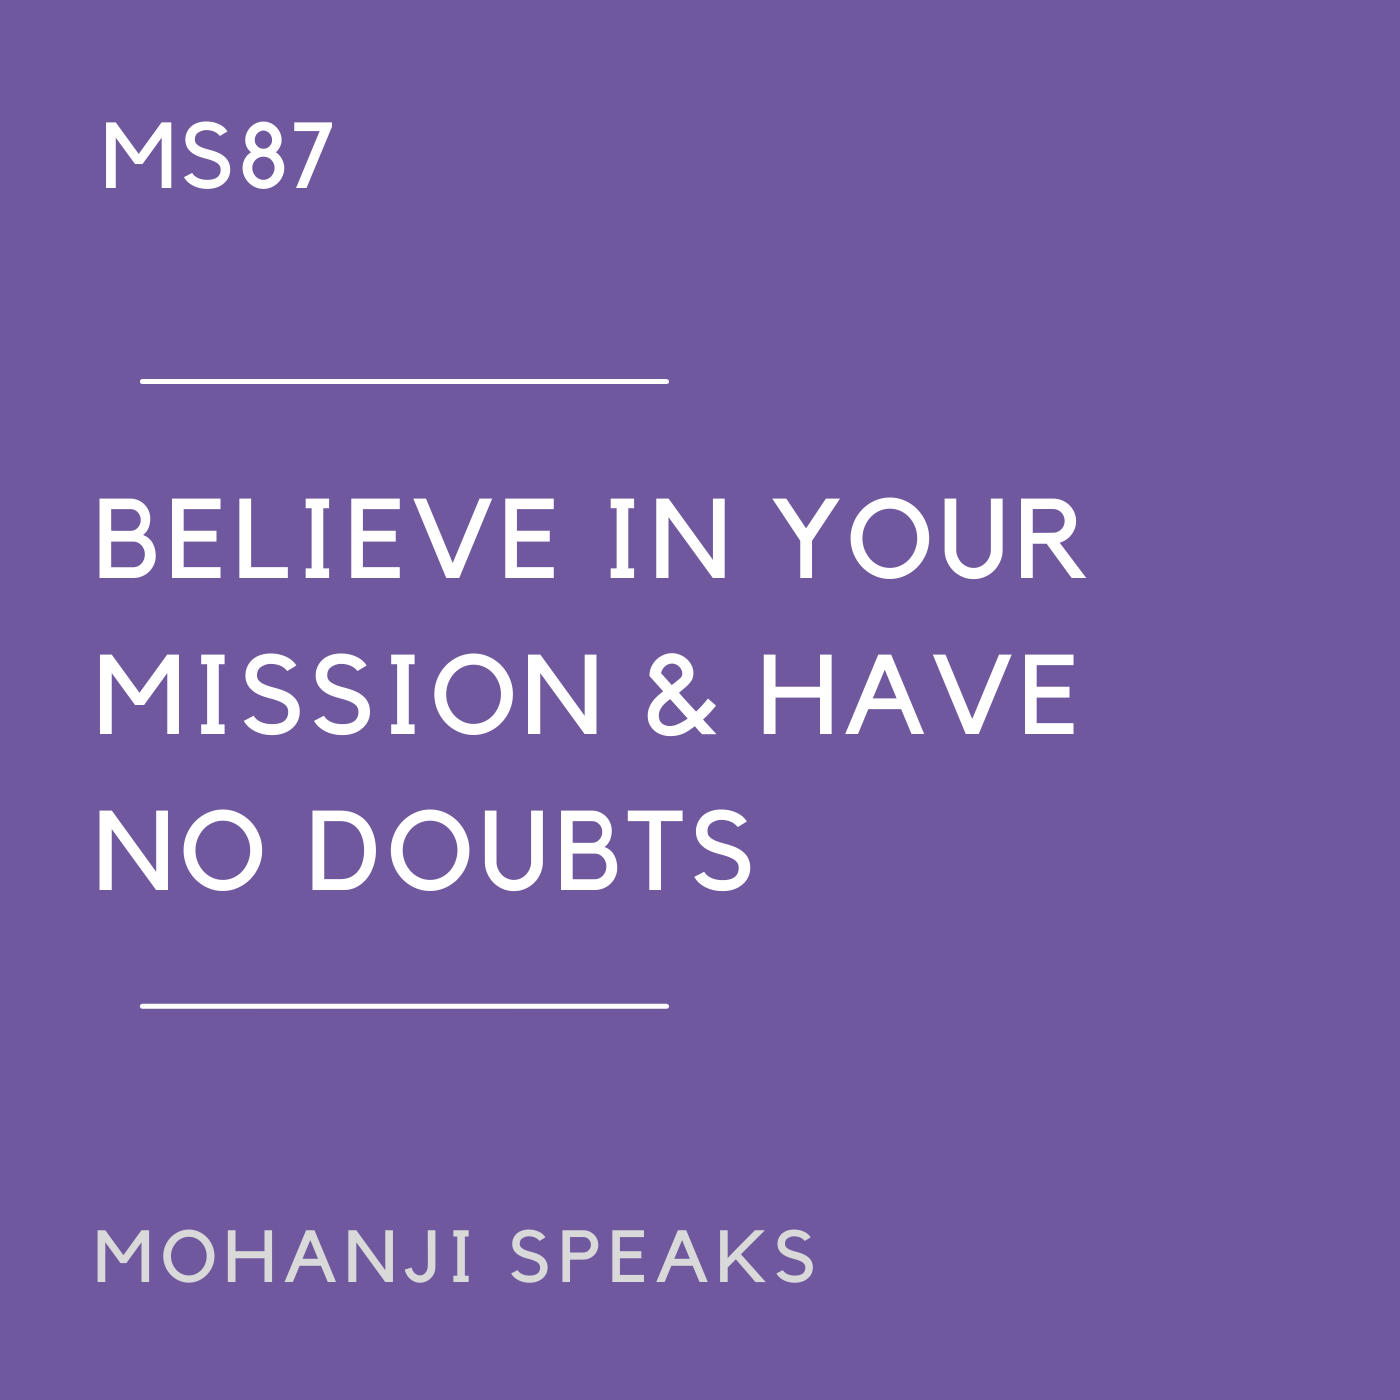 MS87 - Believe in your Mission & Have no Doubts